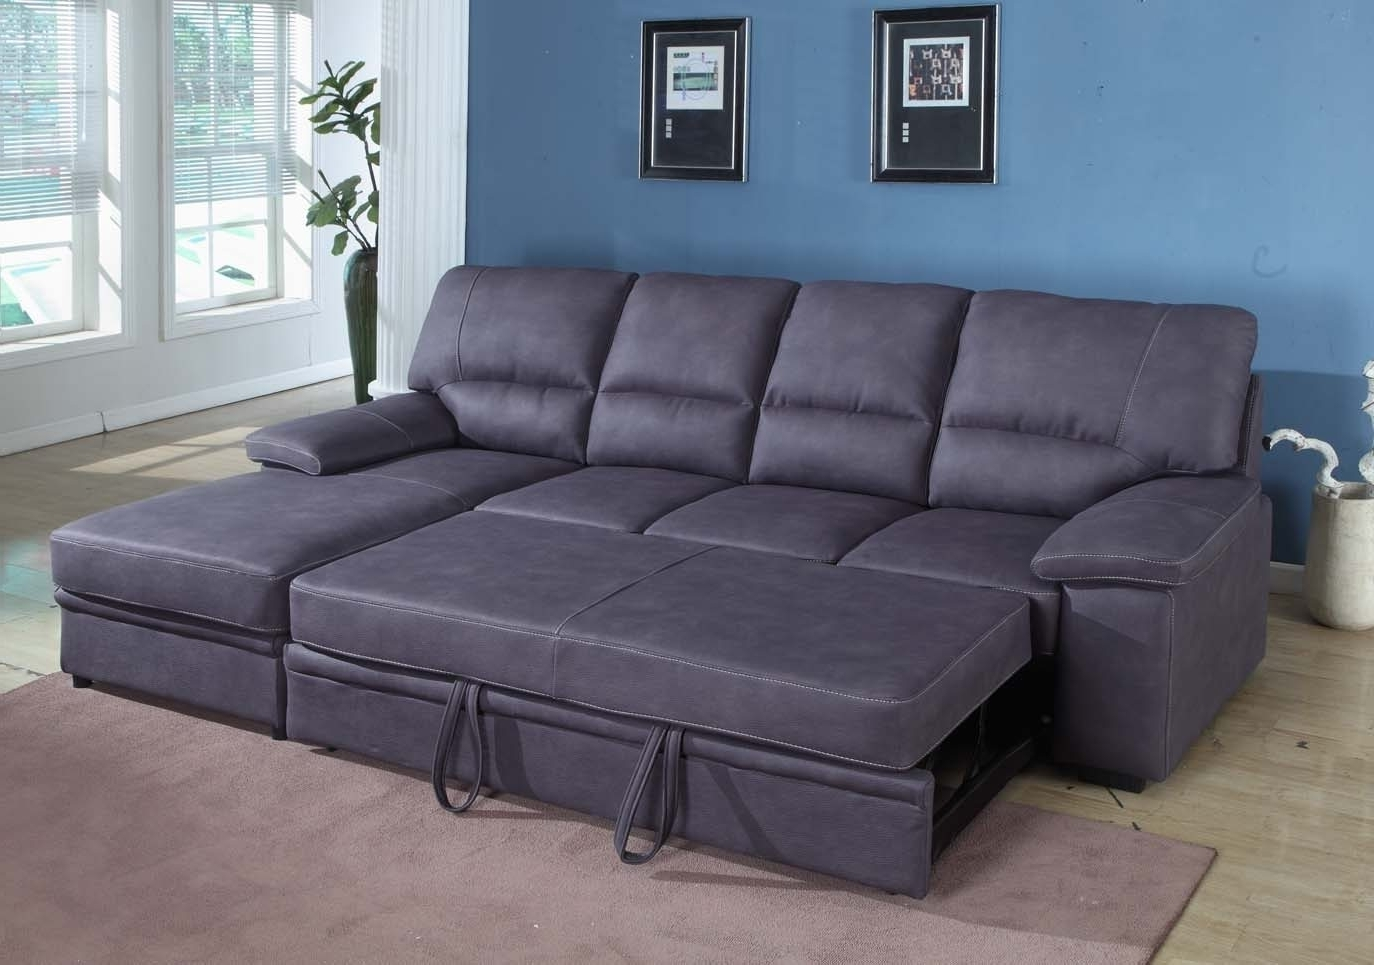 Most Recent Chaise Sectionals Inside Brilliant Sectional Sleeper Sofa With Chaise Cool Living Room (View 14 of 15)